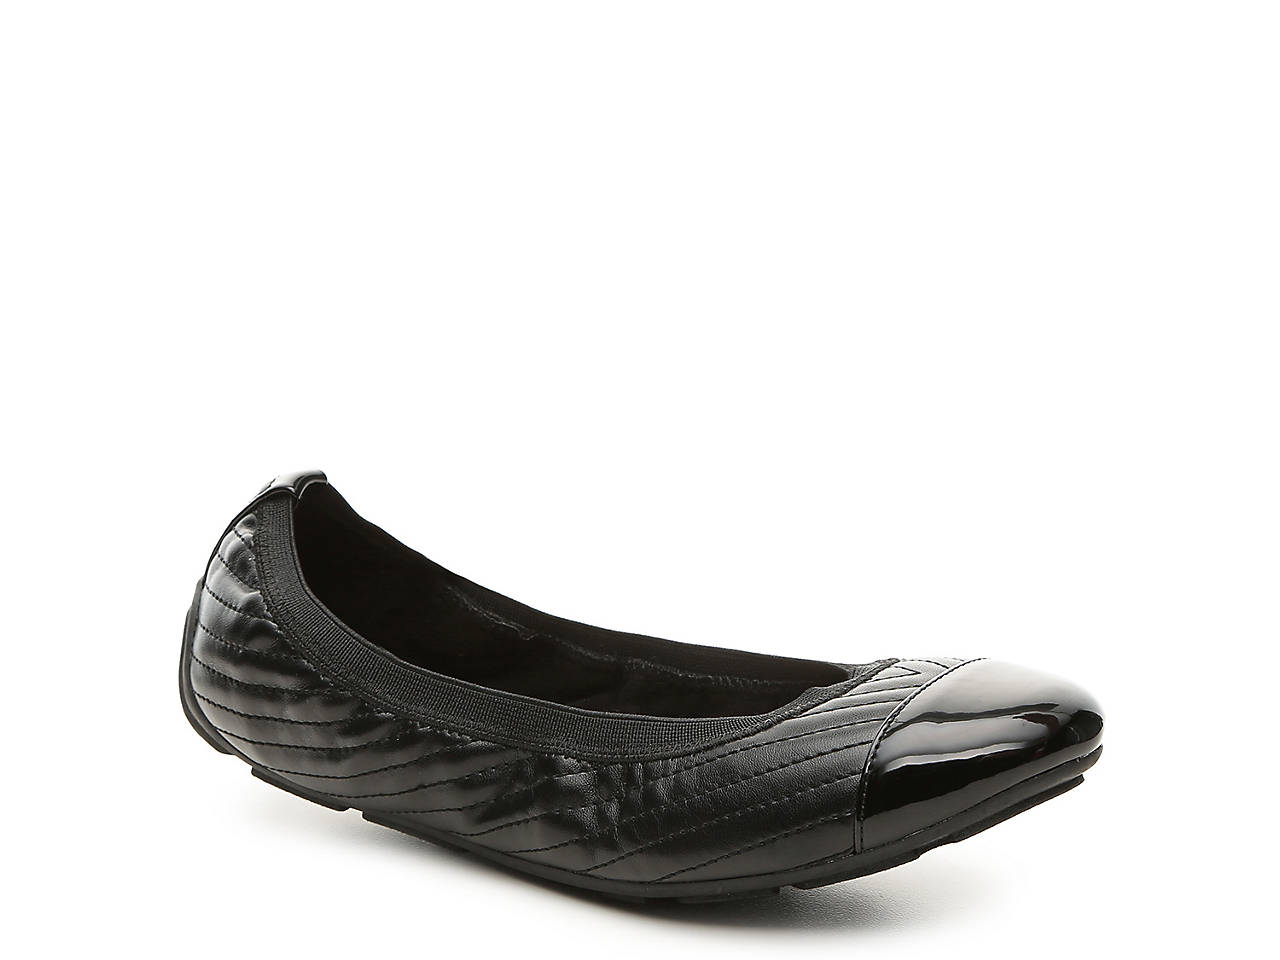 WIDE FIT KATIE - Ballet pumps - black Sale Fake New Styles Cheap Online Clearance Footlocker Outlet Classic 7JJzKiFHl